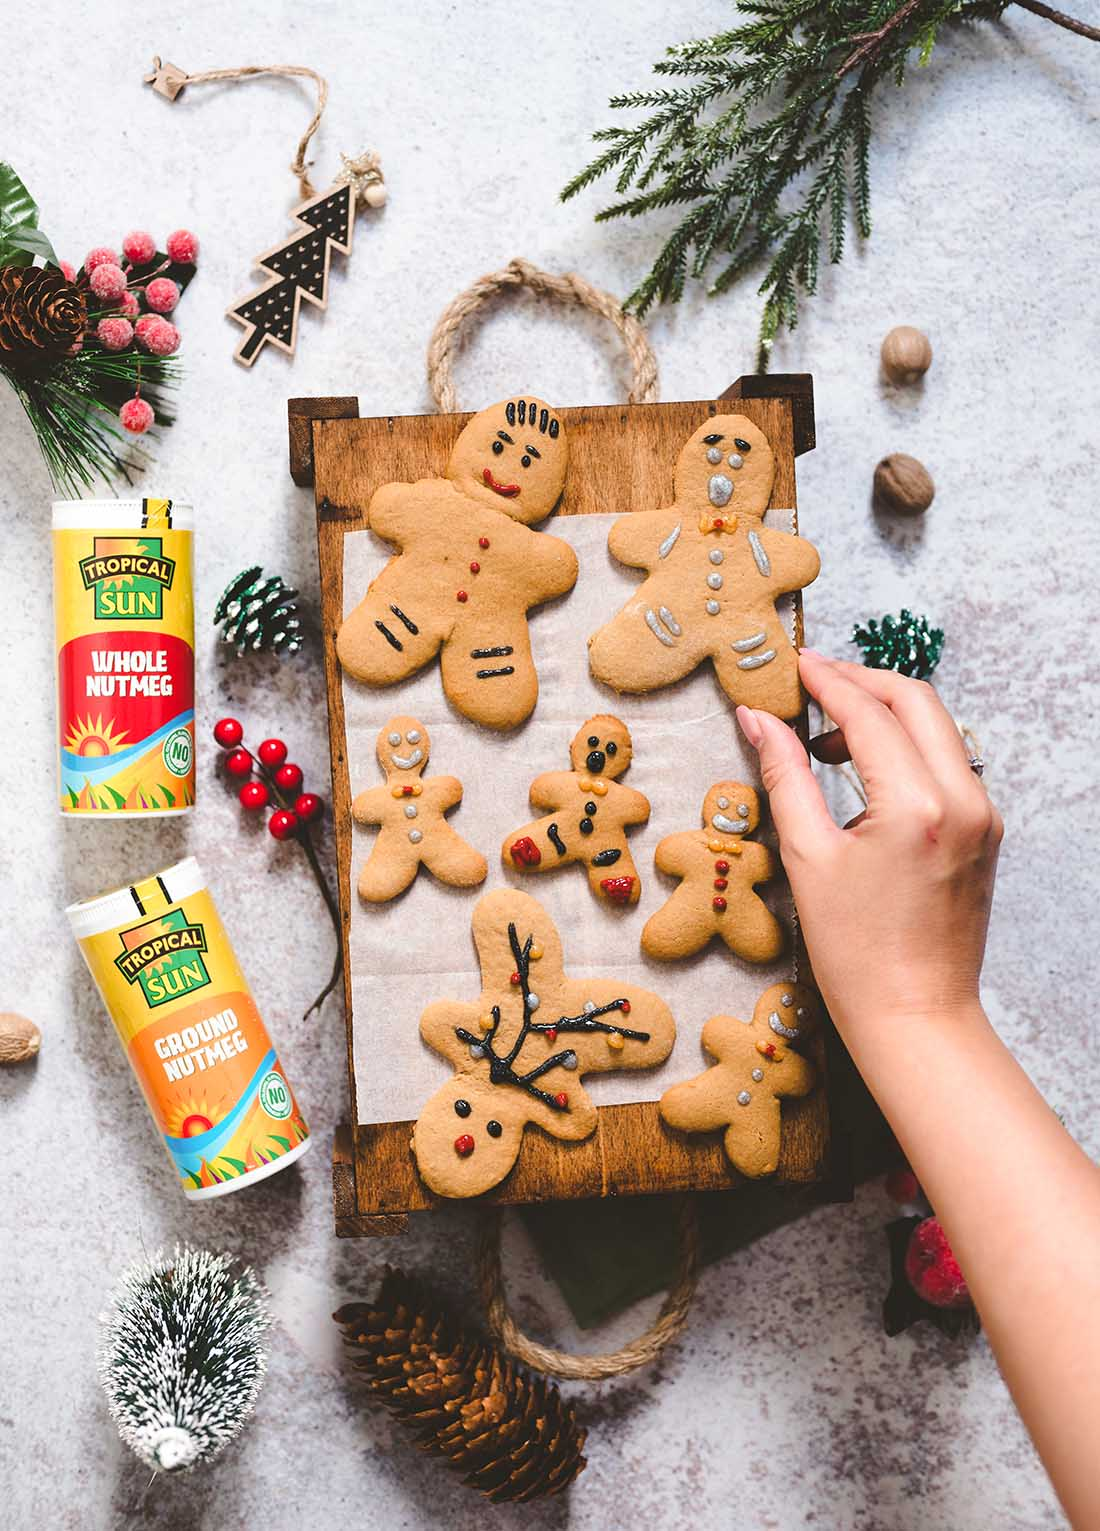 Happy Skin Kitchen Gingerbread Cookies Recipes Tropical Sun Ground Nutmeg